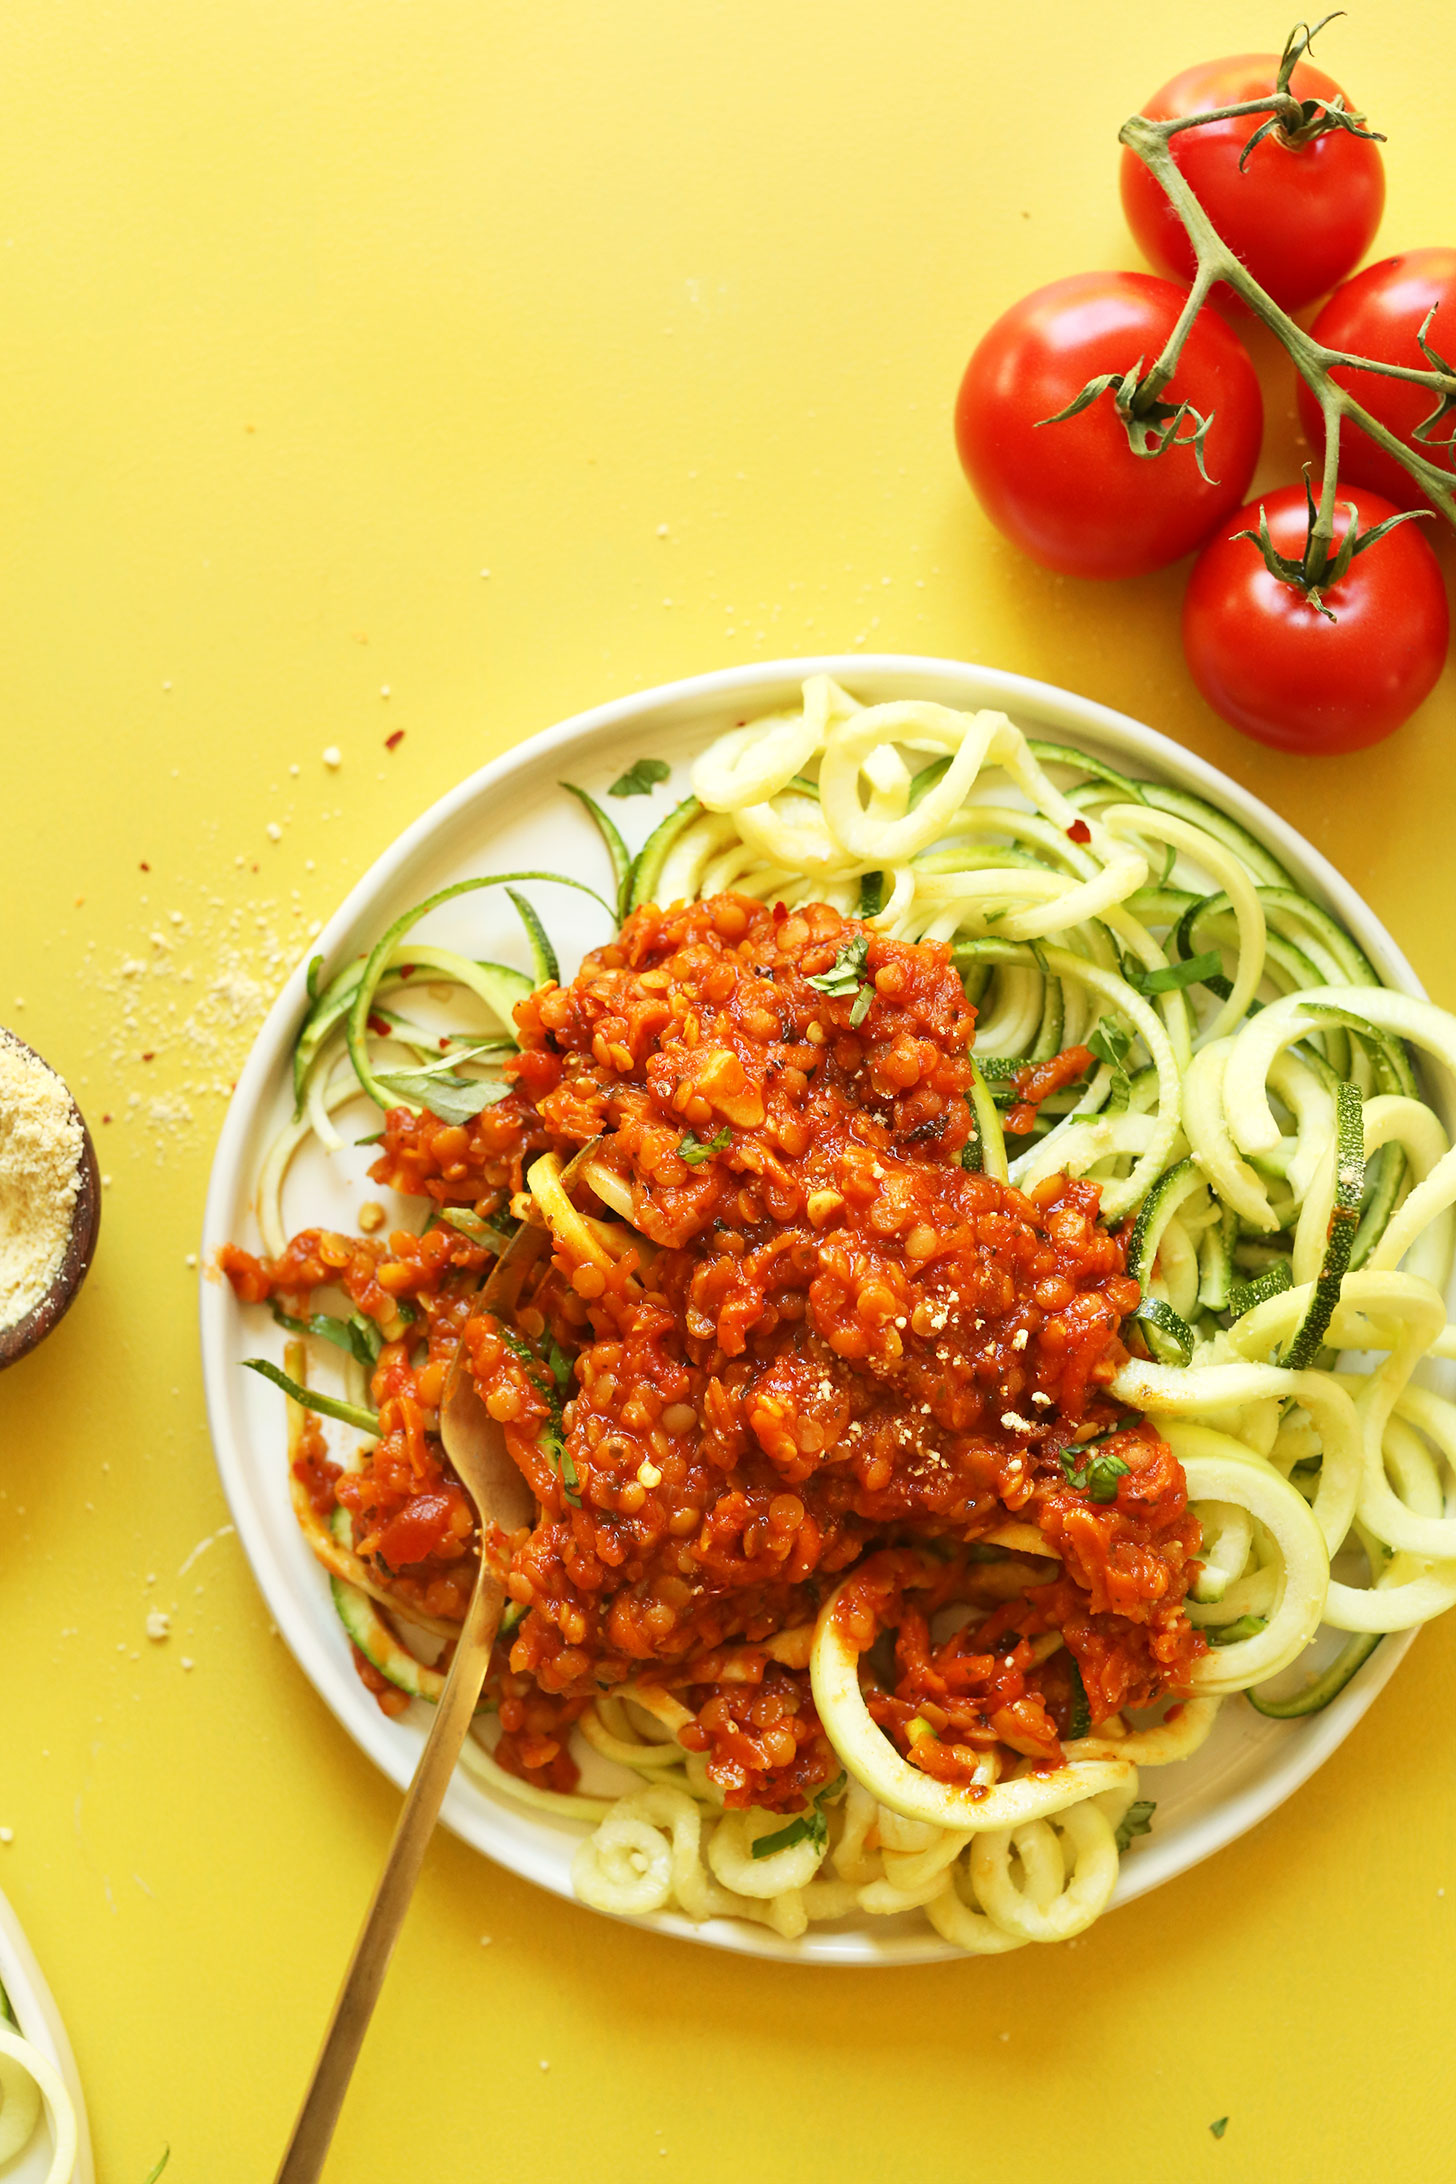 Zucchini Pasta with Vegan Lentil Red Sauce for a healthy weeknight plant-based meal